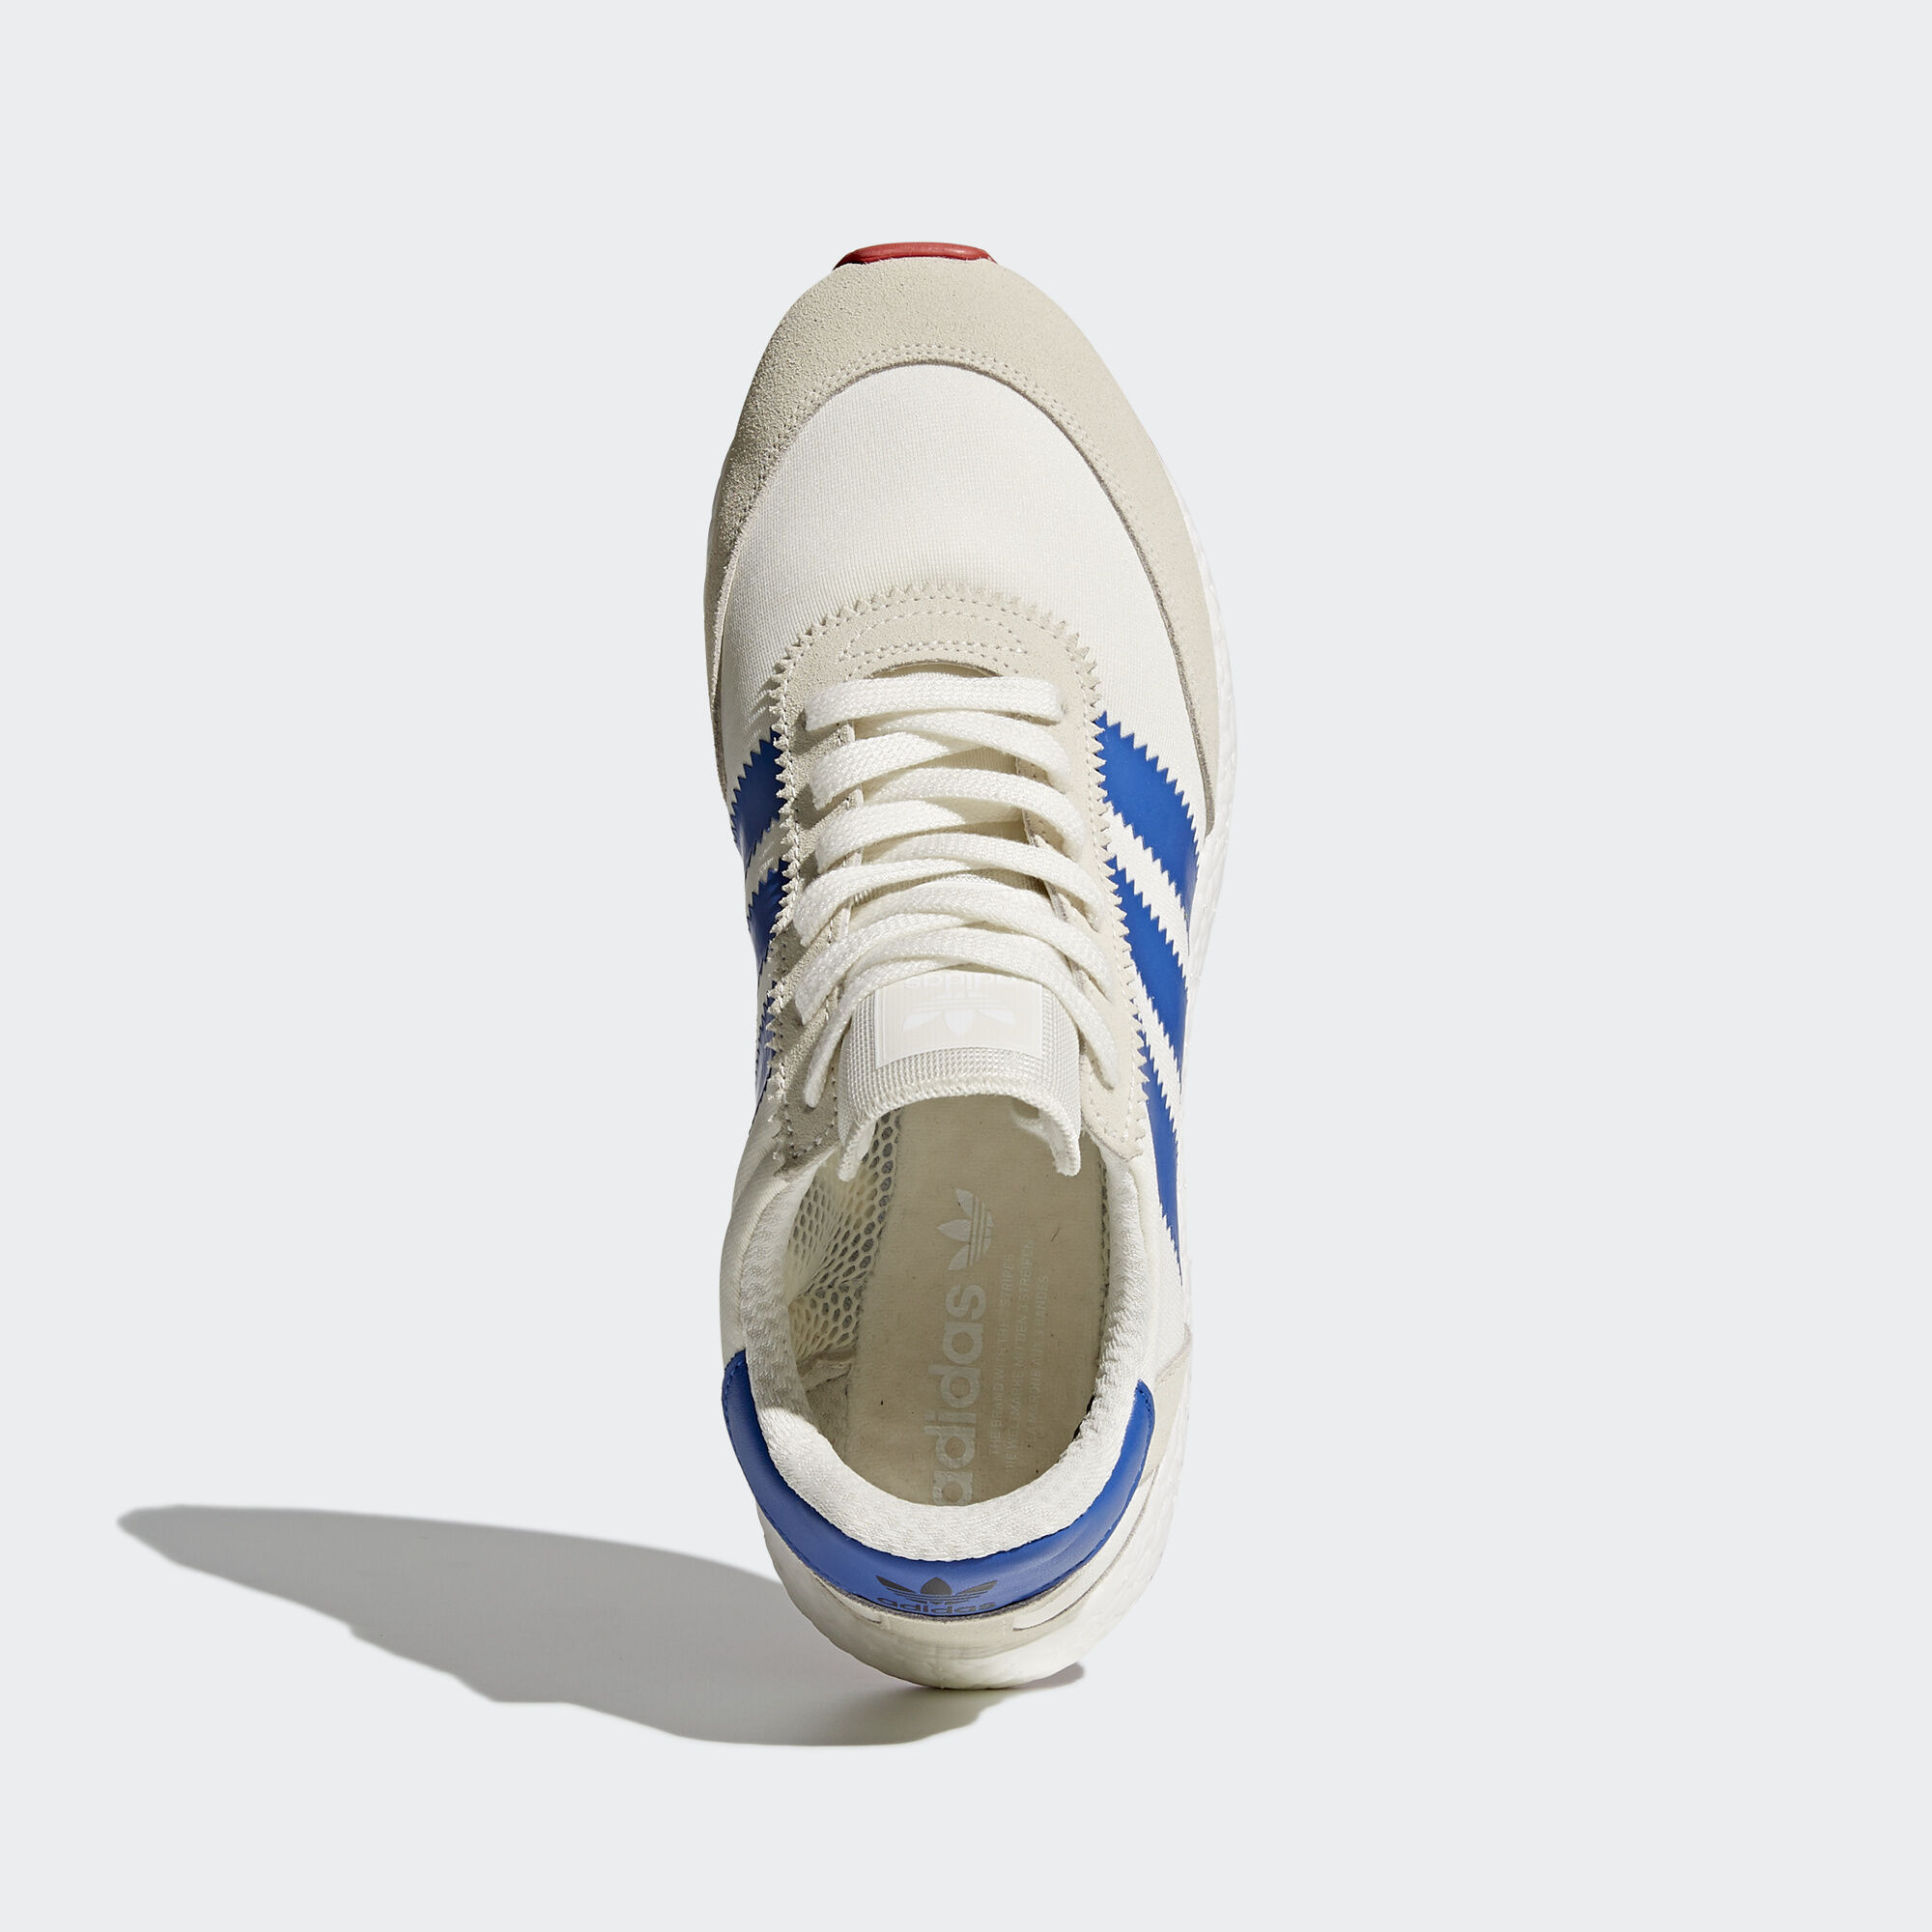 9bba7d345598 ... adidas Iniki Runner Pride of the 70s CW off whitebluecore red. SKU  BB2093 Release ...